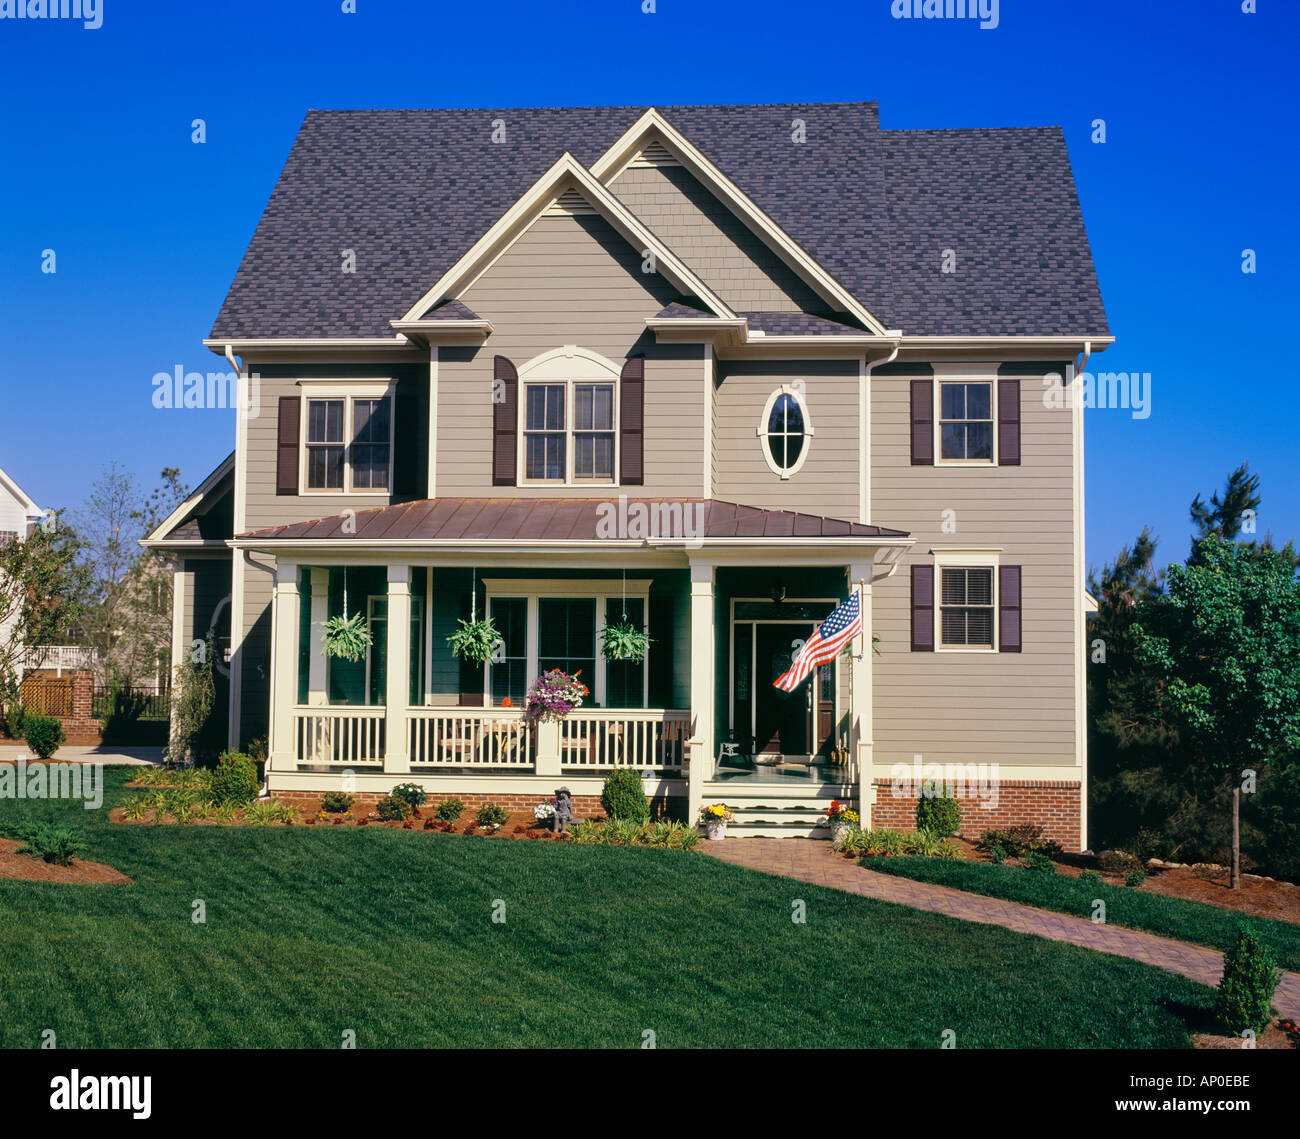 Front view of a large brown two story house with white for See images of my house